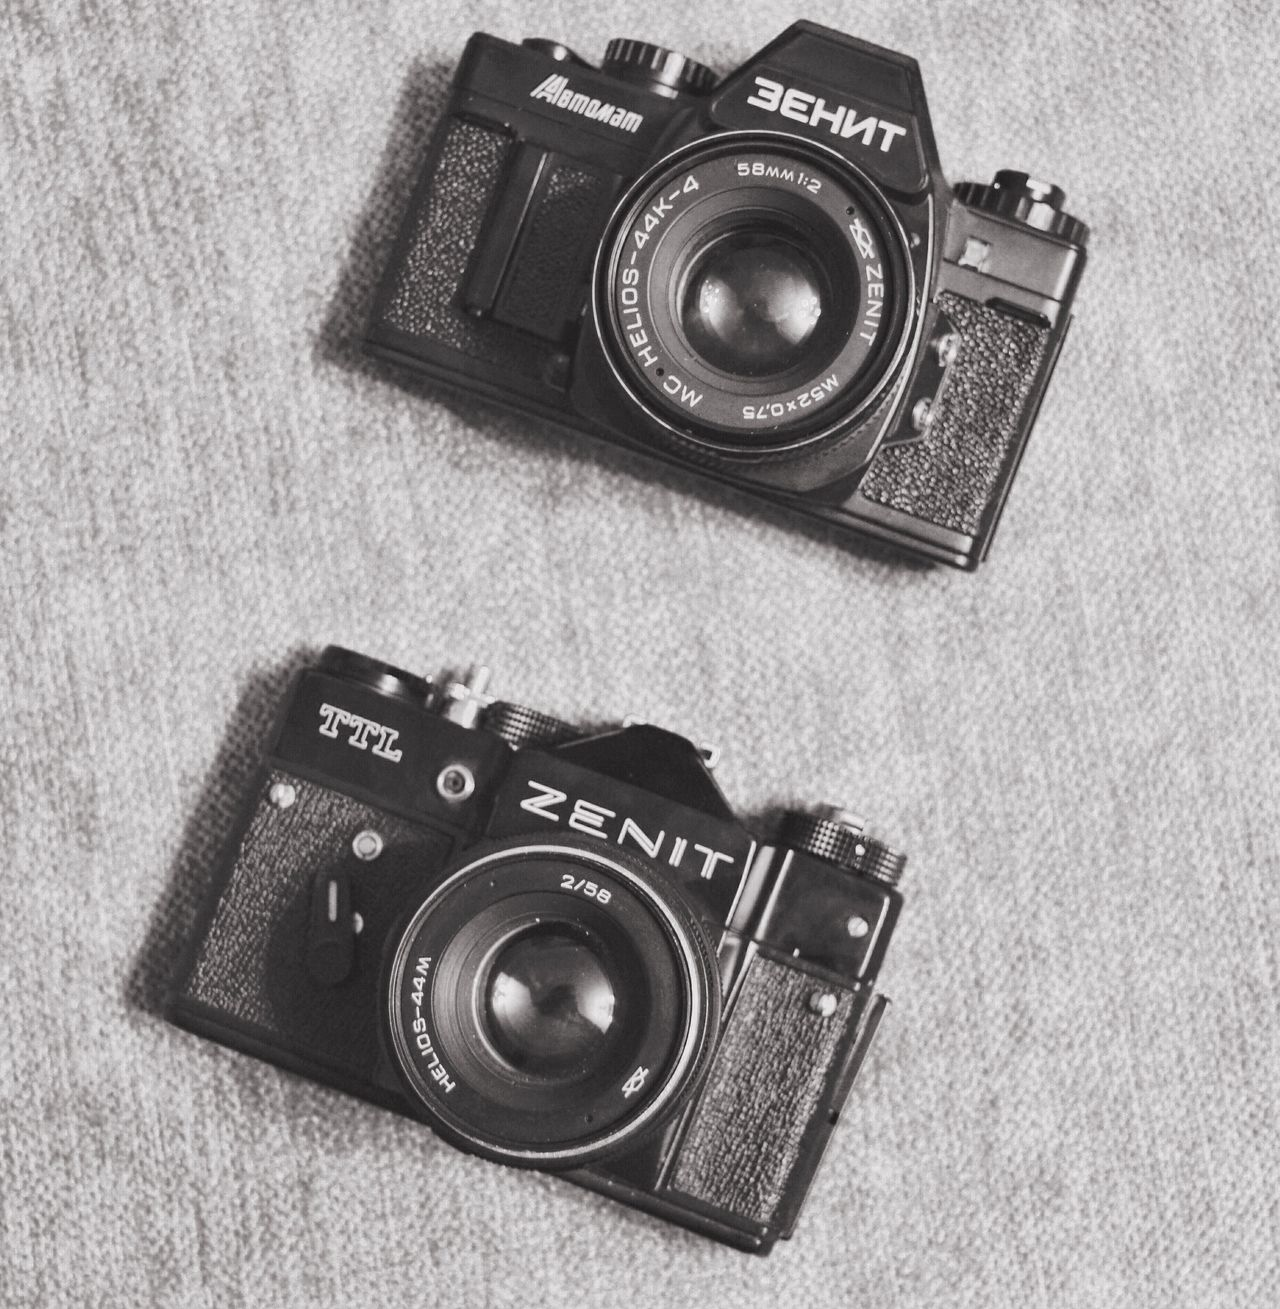 Old USSR lens cameras Zenit Photography Themes Camera - Photographic Equipment Photographic Equipment Retro Styled Old-fashioned Photographing SLR Camera Technology No People Digital Camera Lens - Eye Close-up Day